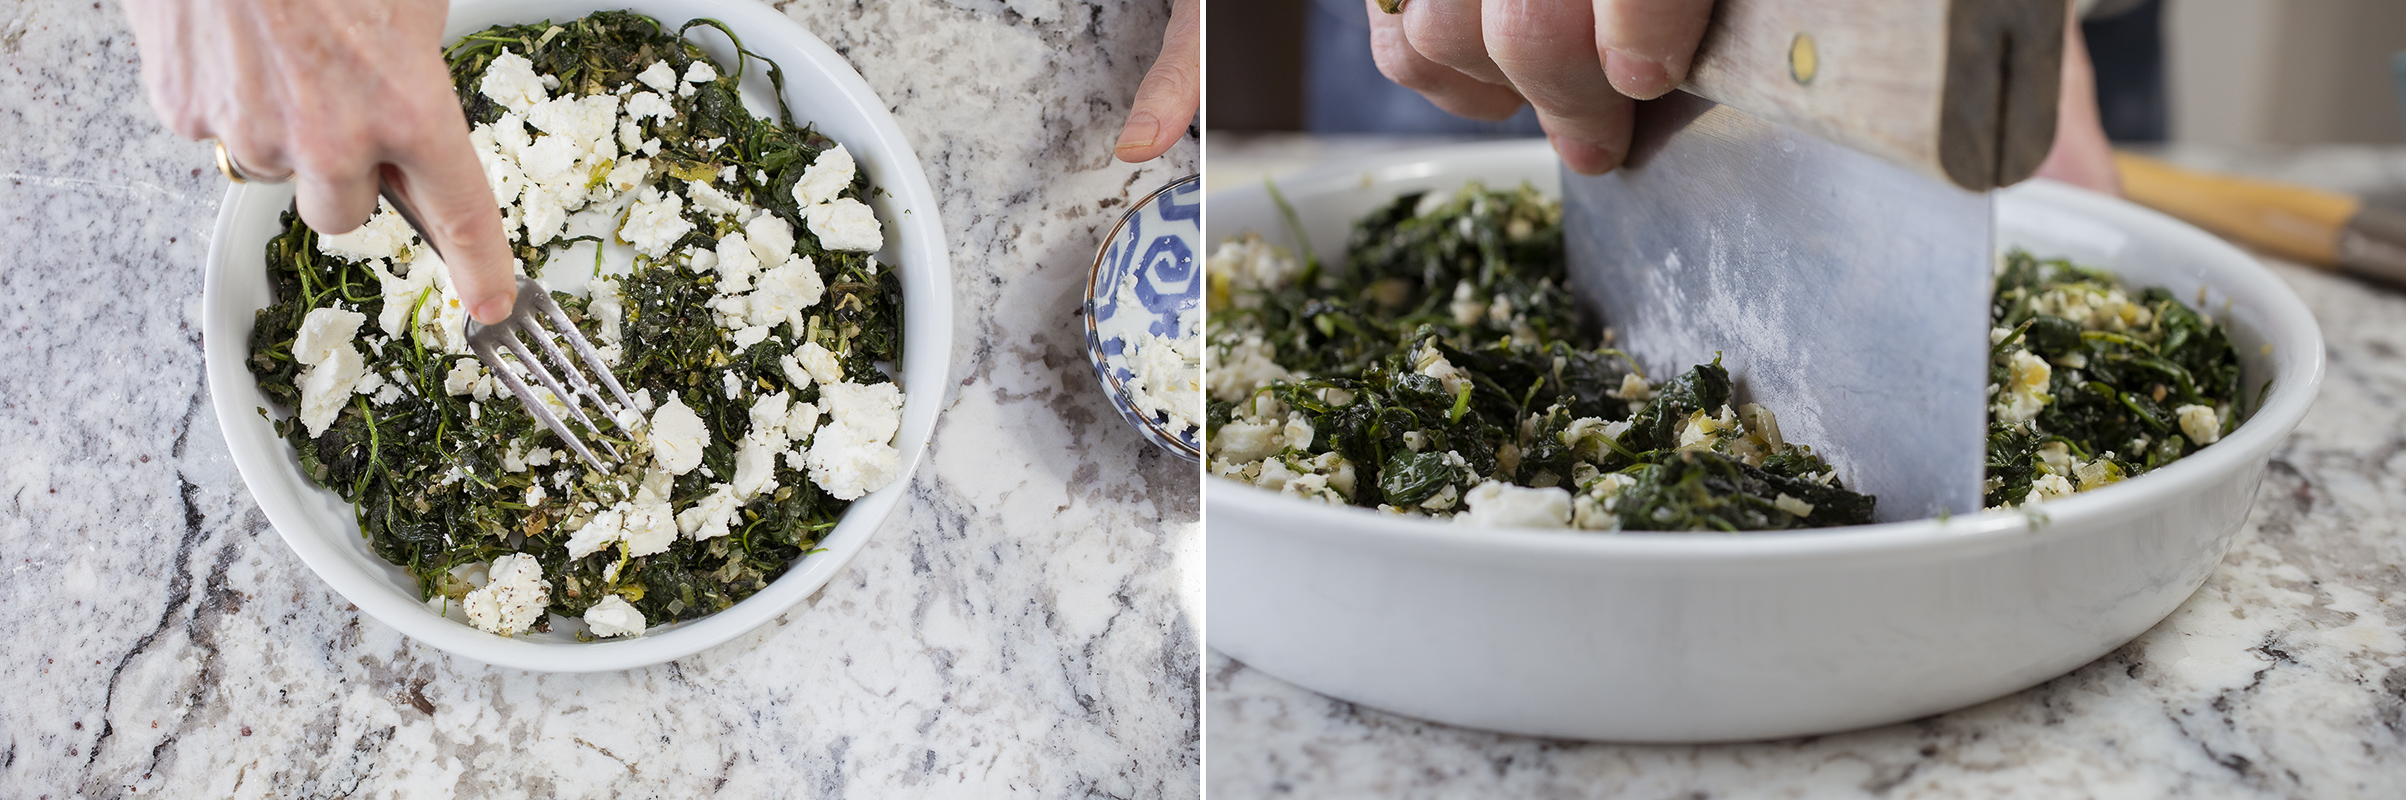 Greens and feta 2w-2